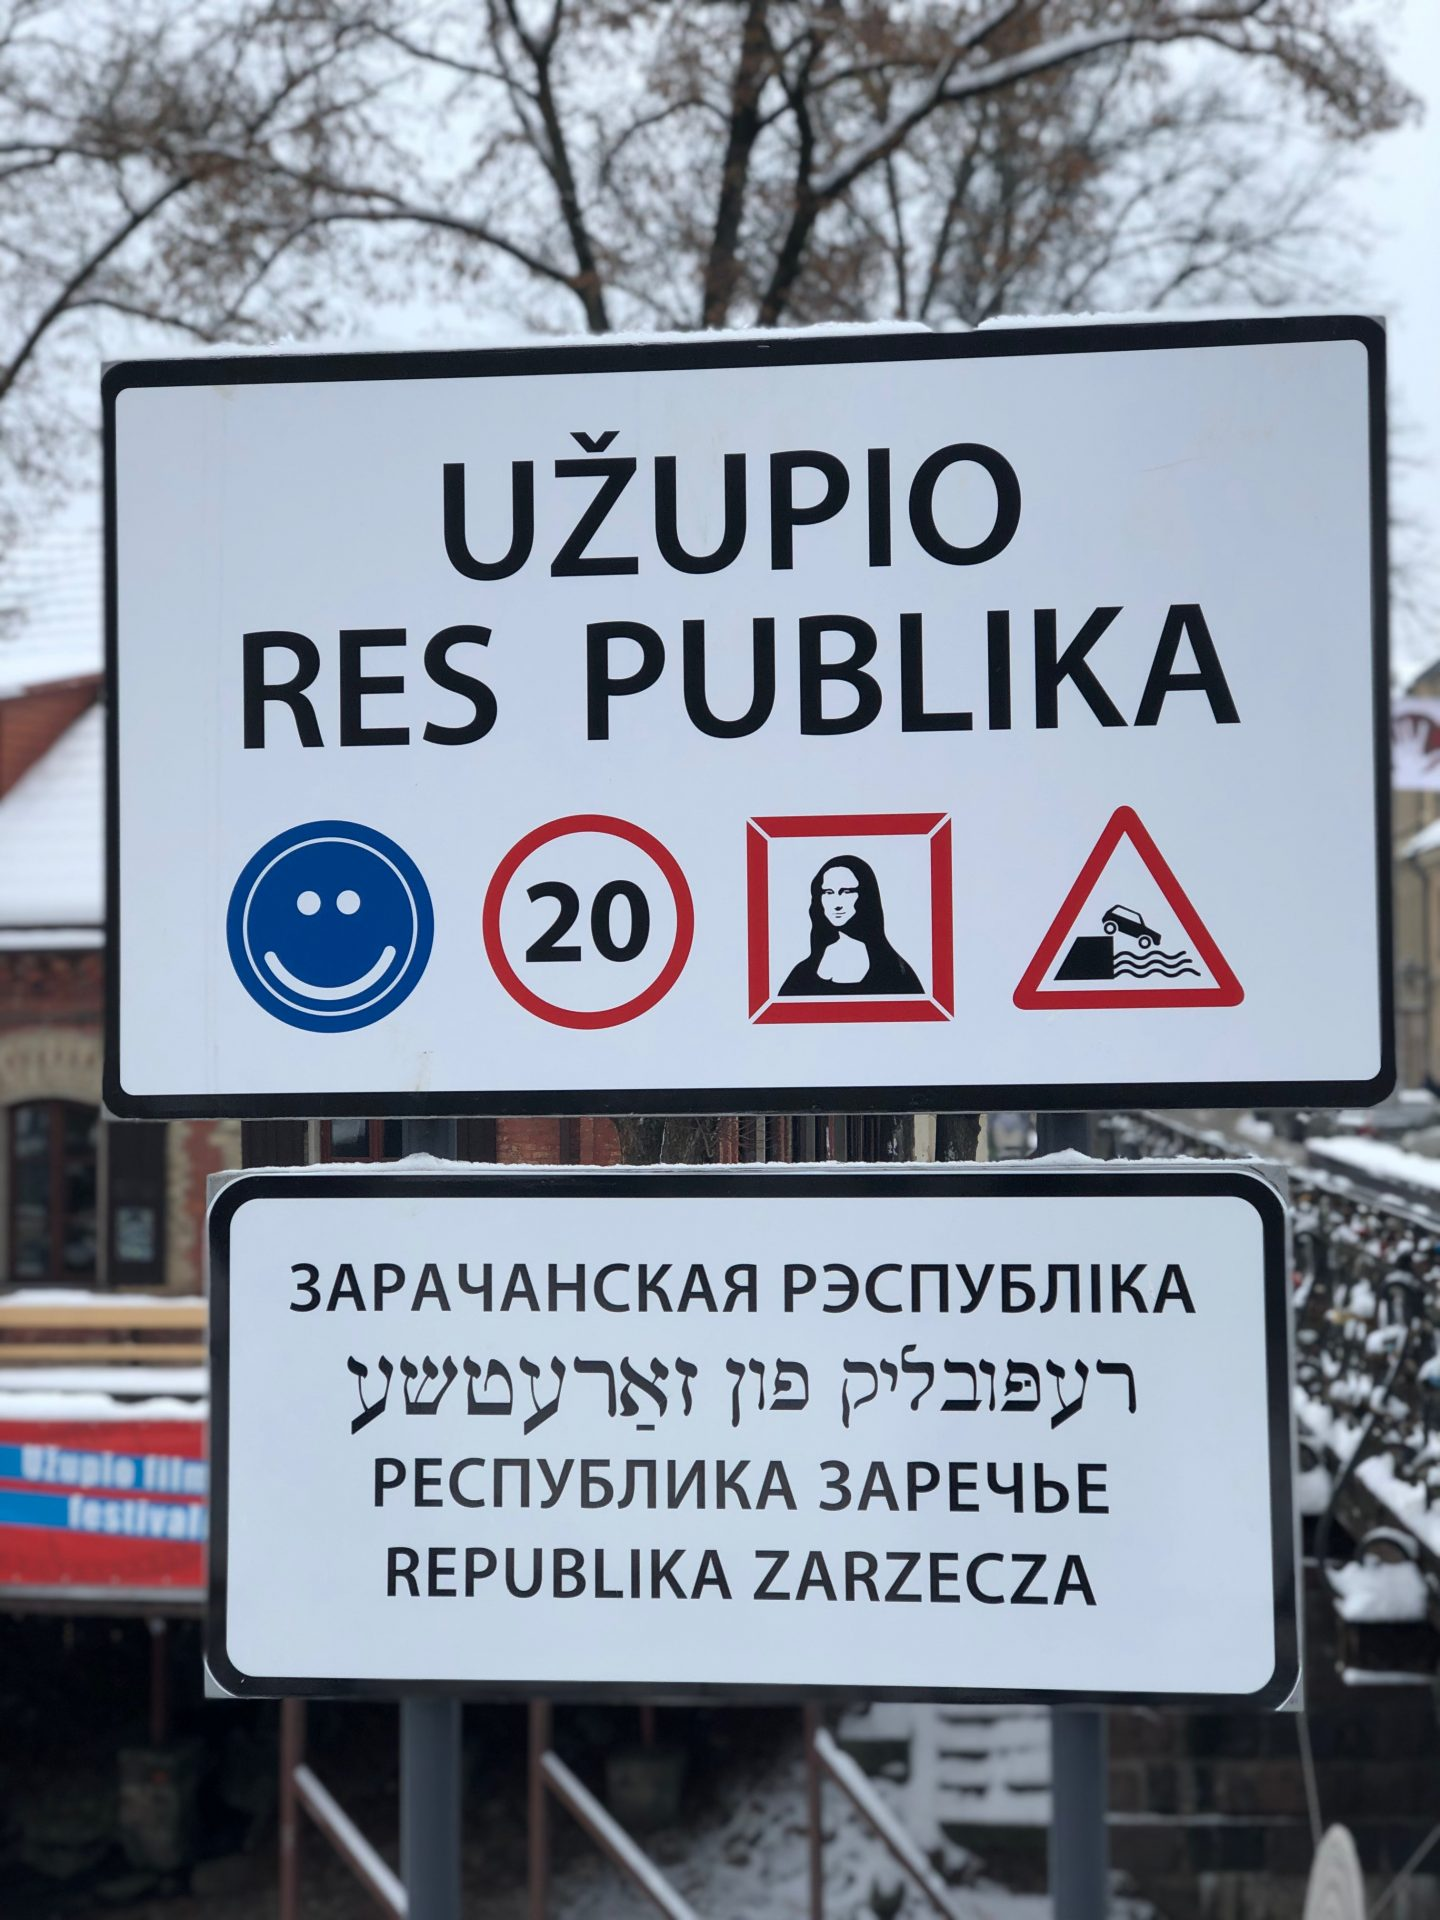 Things to do in Vilnius in winter: A sign showing Uzupio Res Publica with icons below it featuring a smiley face, a 20 miles per hour warning an a picture of the mona lisa.